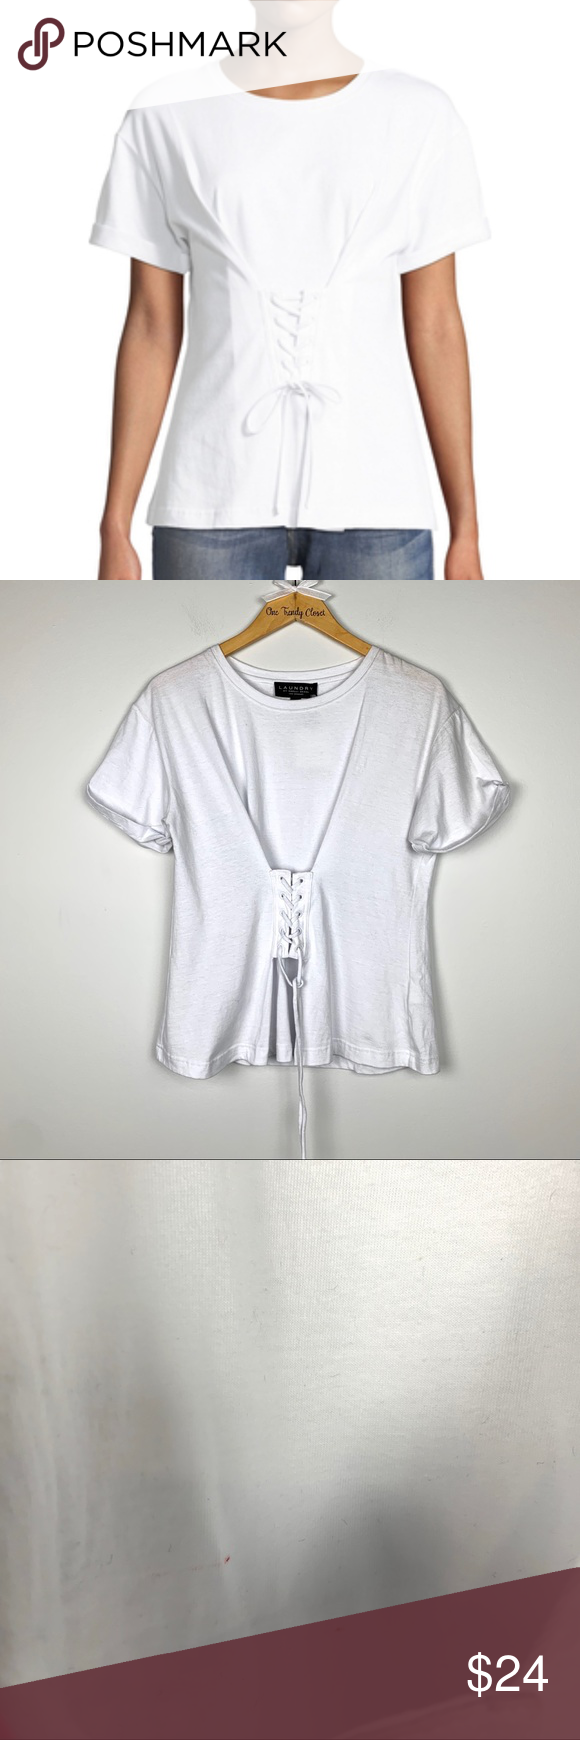 Laundry By Shelli Segal White Shirt With Corset Nwt With Images White Short Sleeve Shirt Clothes Design White Shirt